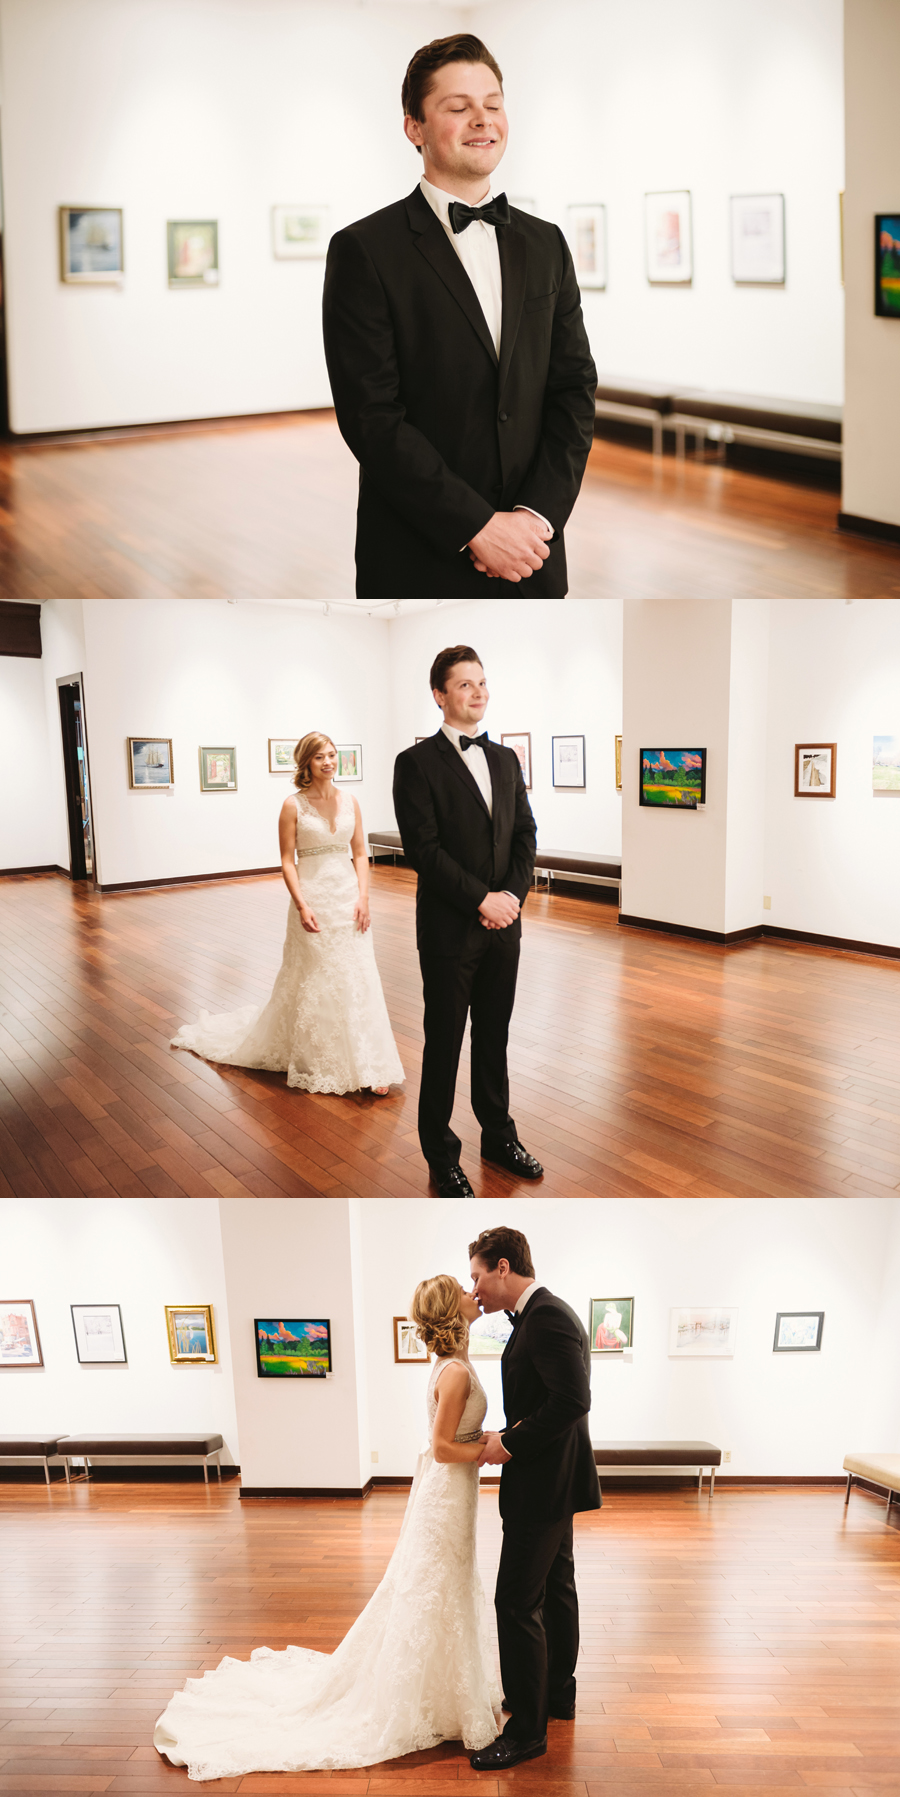 Misty Milwaukee Wedding at Discovery World by Chicago Photographers Two Birds Photography006